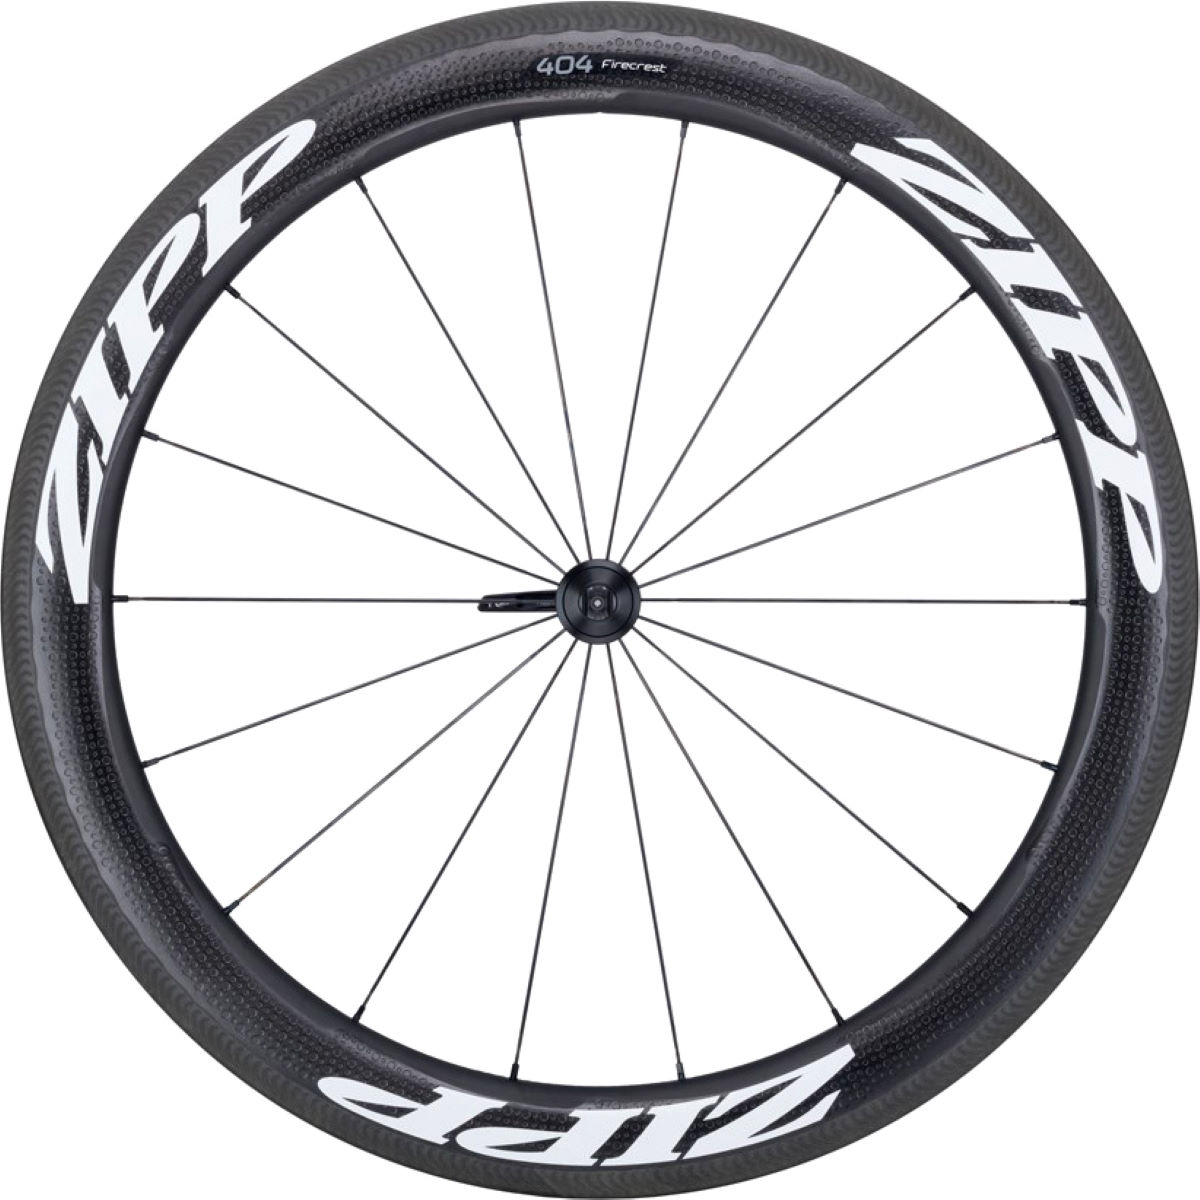 Zipp 404 Carbon Clincher Front Wheel (QR)   Performance Wheels